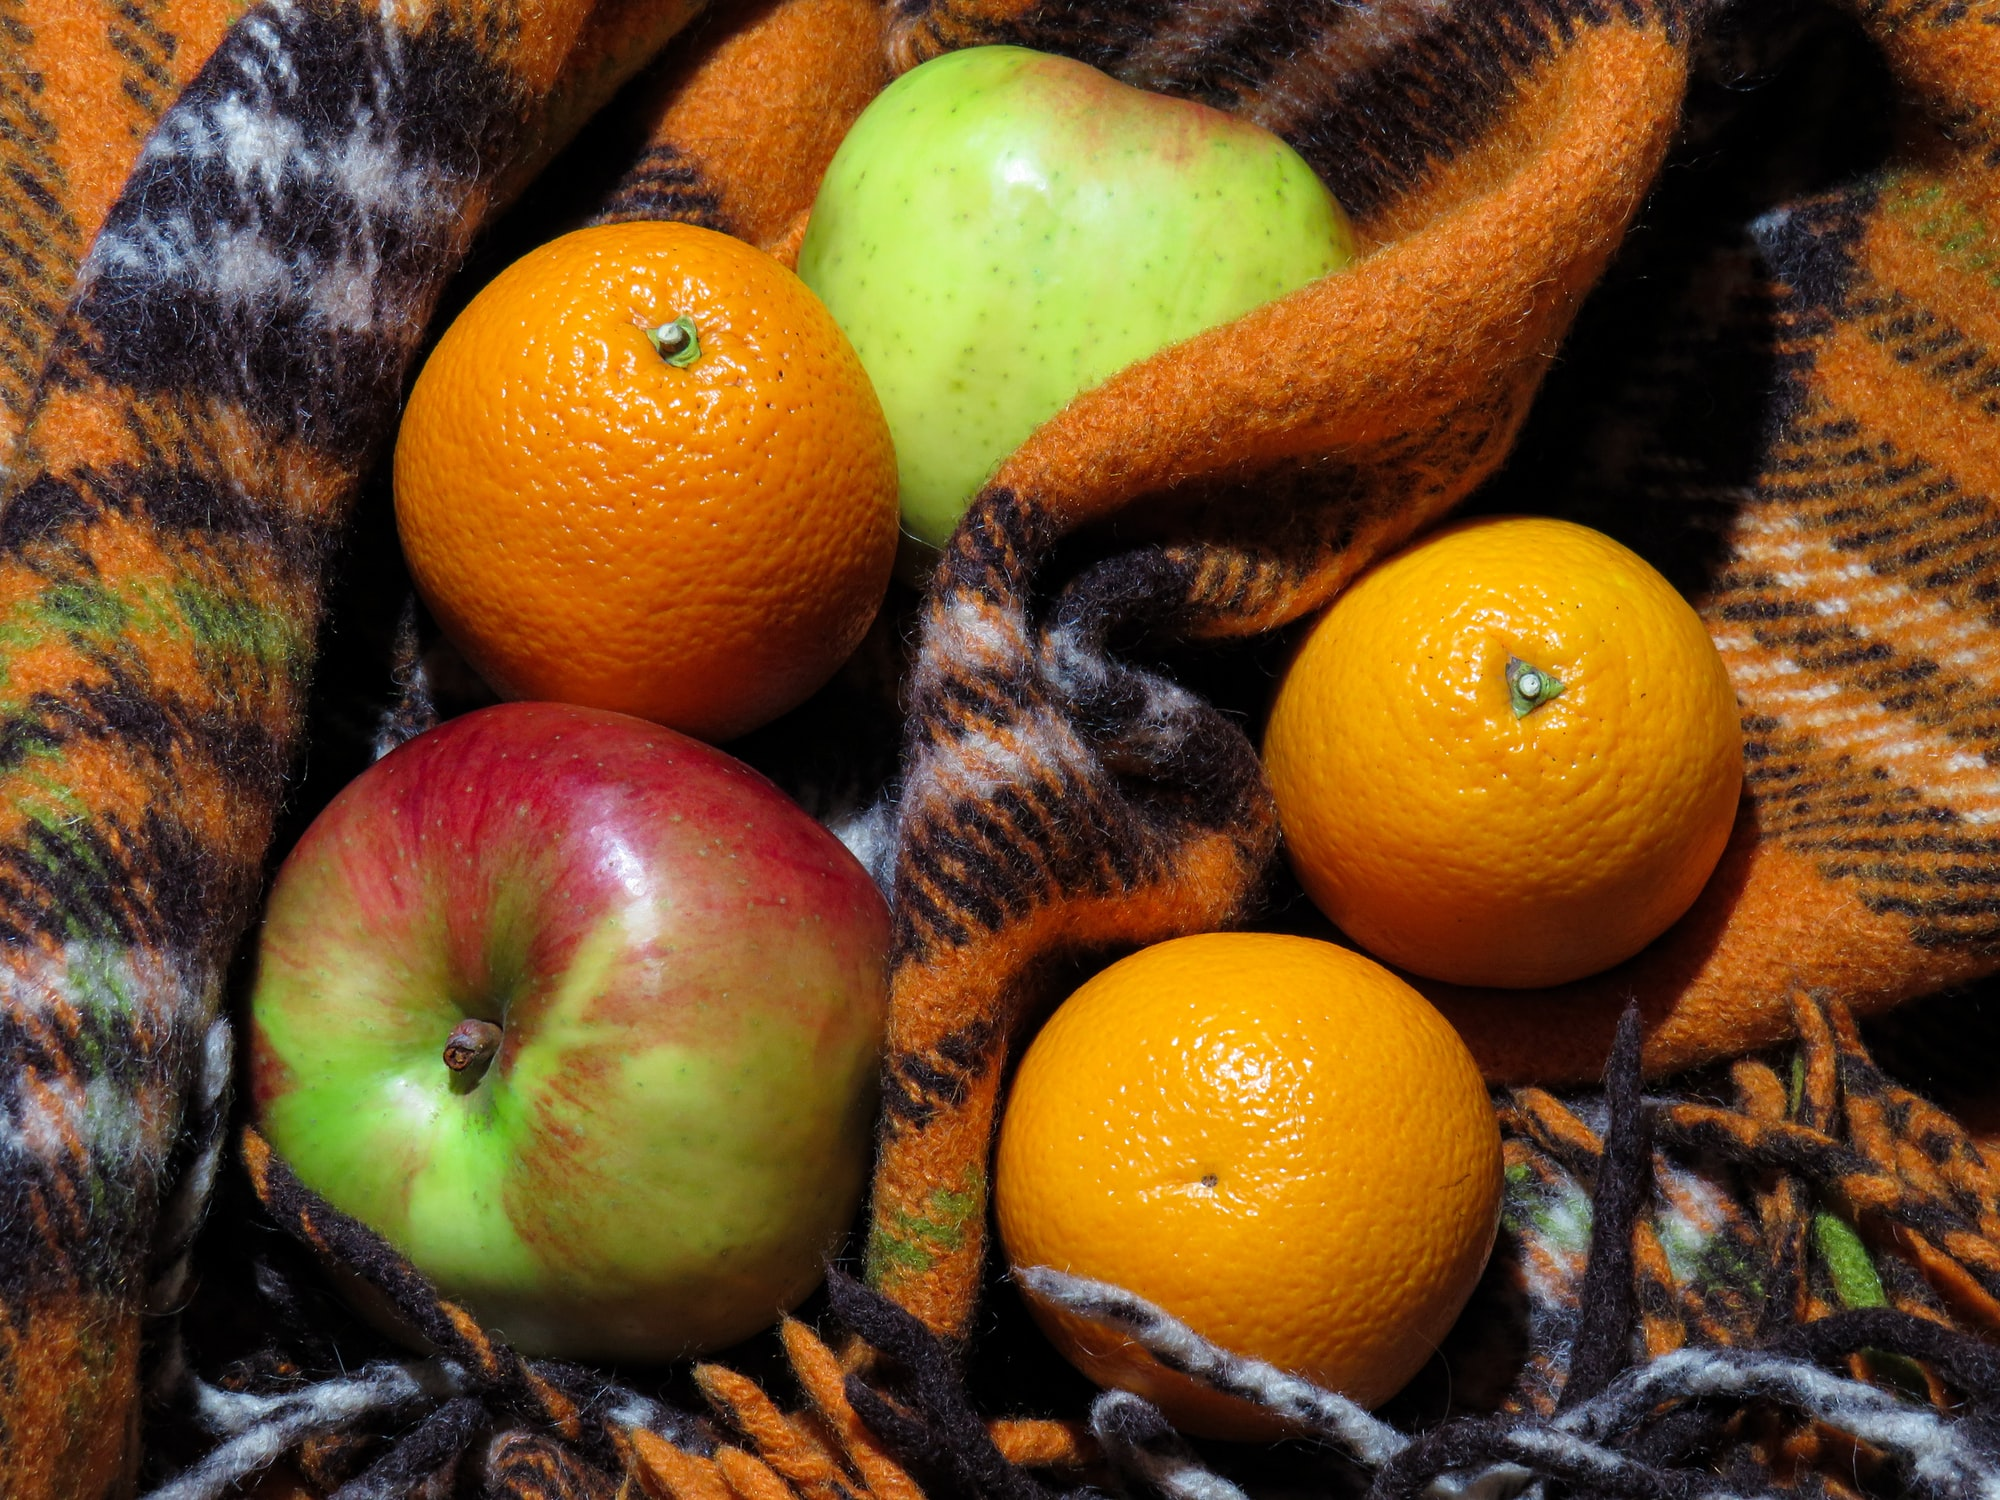 A warm plaid and tasty oranges and apples.